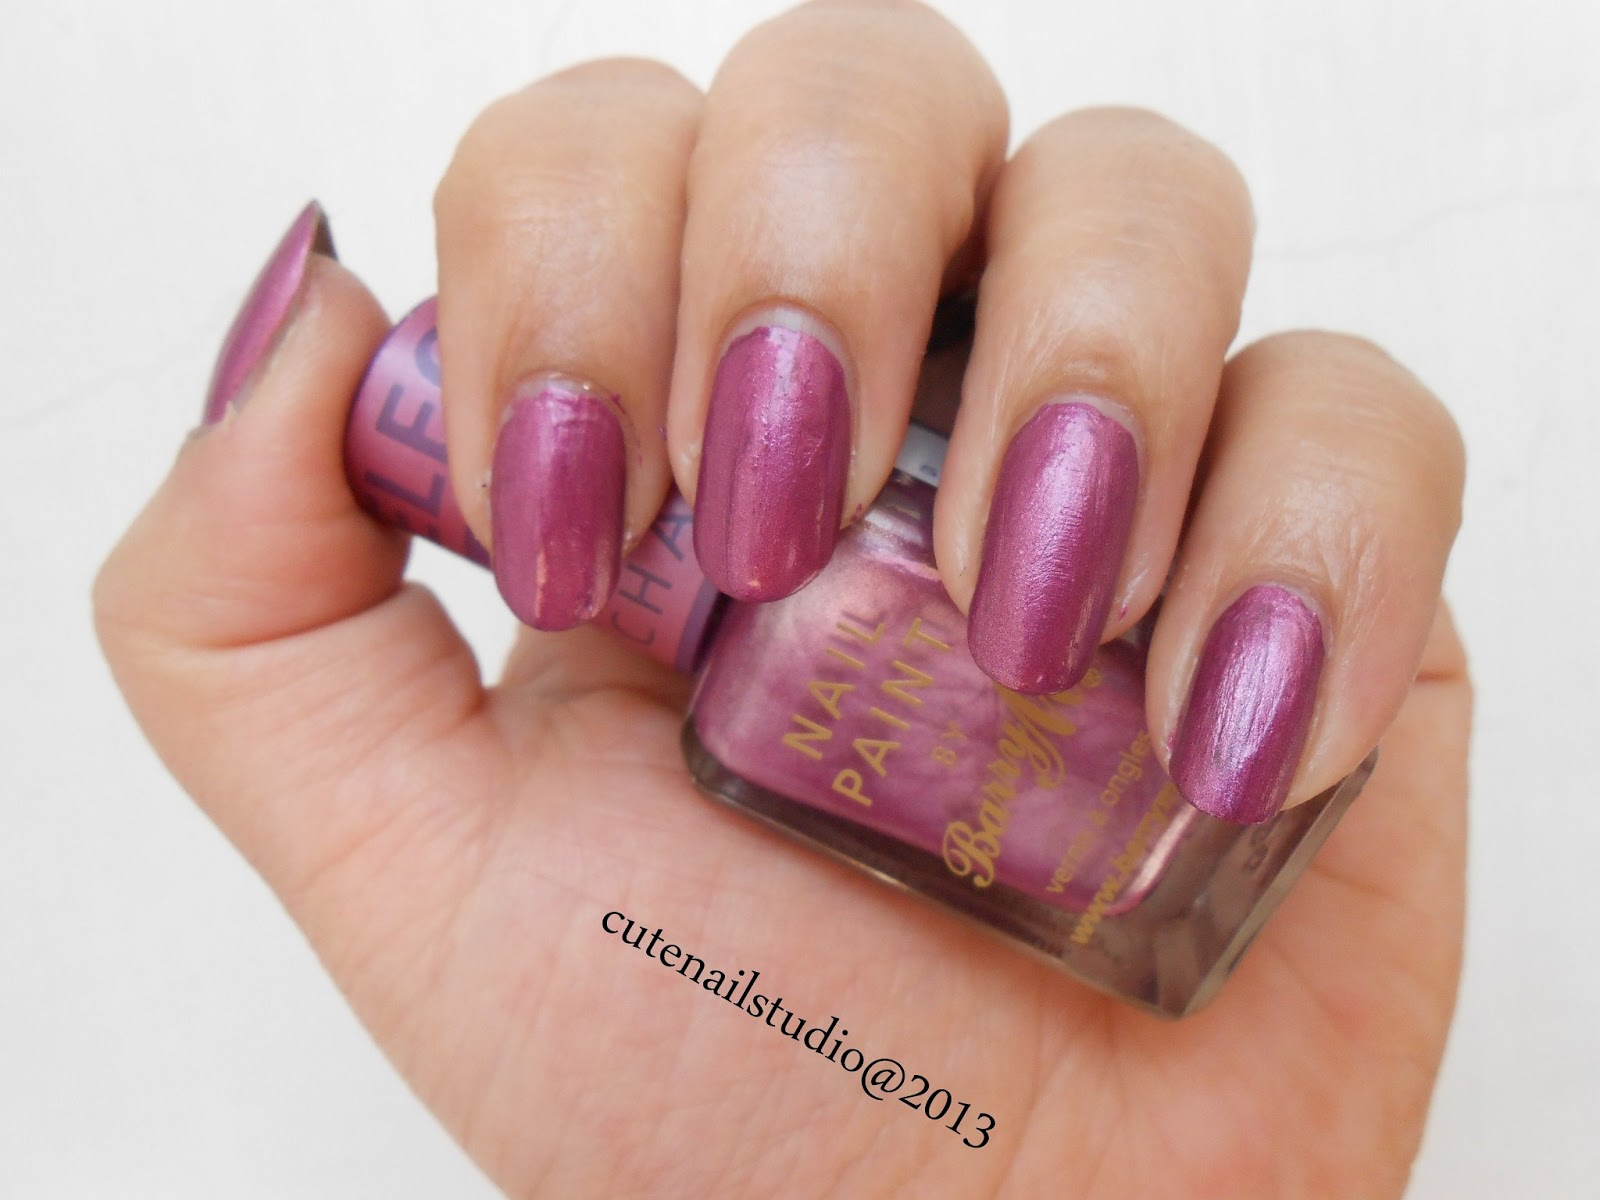 I Applied Topcoat In The Center Of My Nailsone Coat Only And Voila Color Changes Just Like Some Magic Pink Into Bright